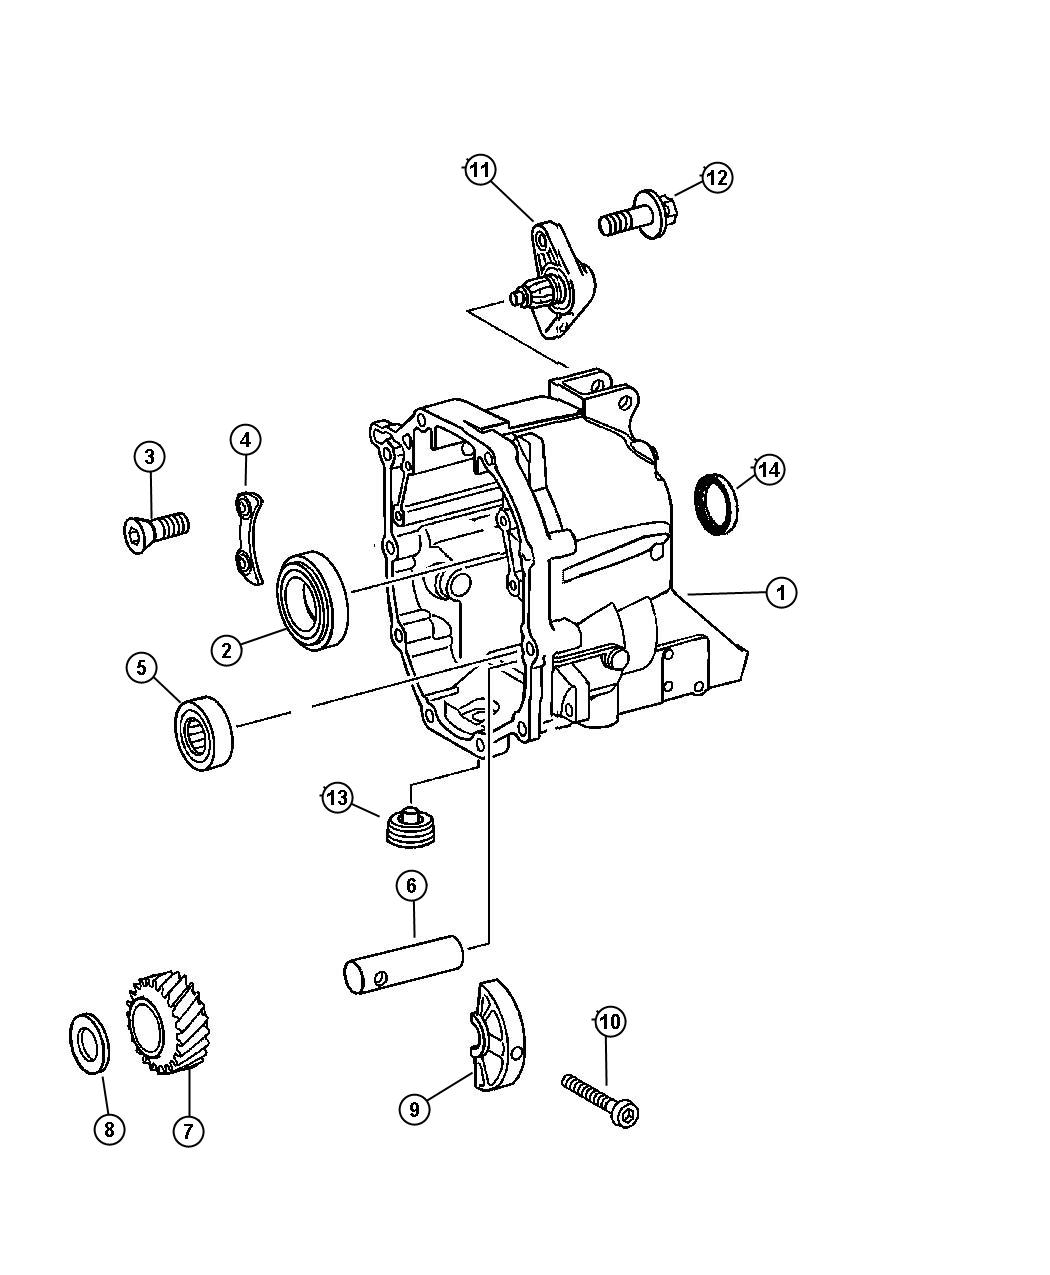 Jeep Liberty Washer Use Along With Screw For Flange Use